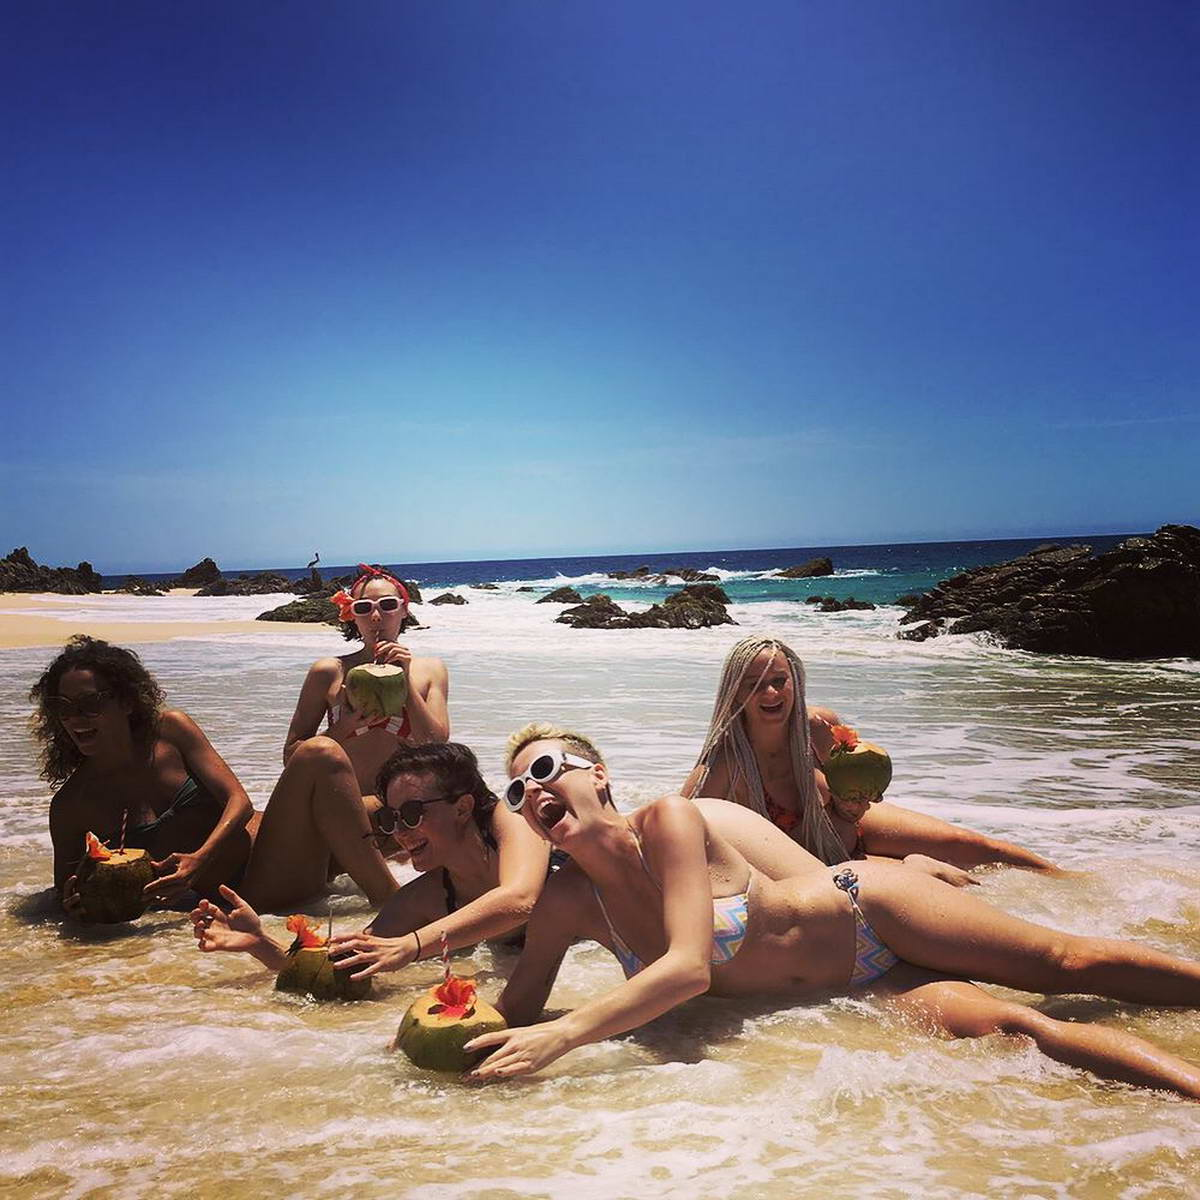 katy perry in bikini holidaying at beach in cabo-100517_5 Alessandra Ambrosio